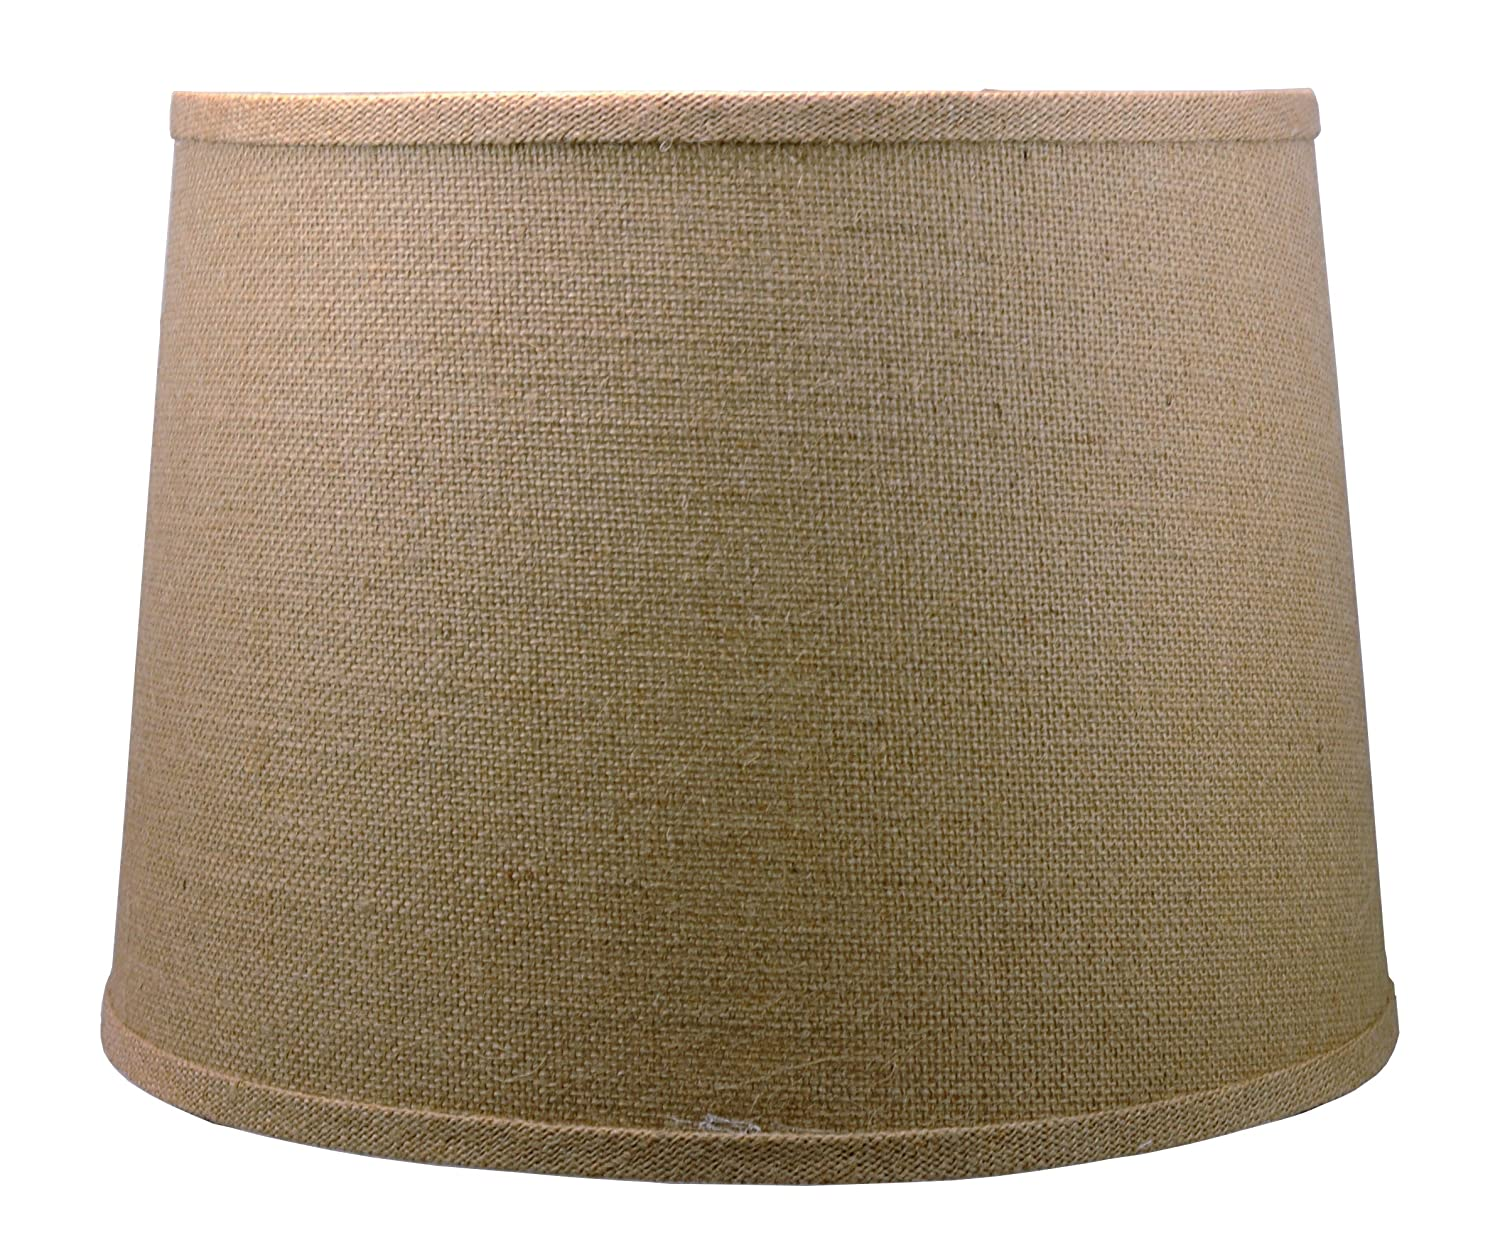 Urbanest French Drum Burlap Lampshade, 12-inch by 14-inch by 10 ...